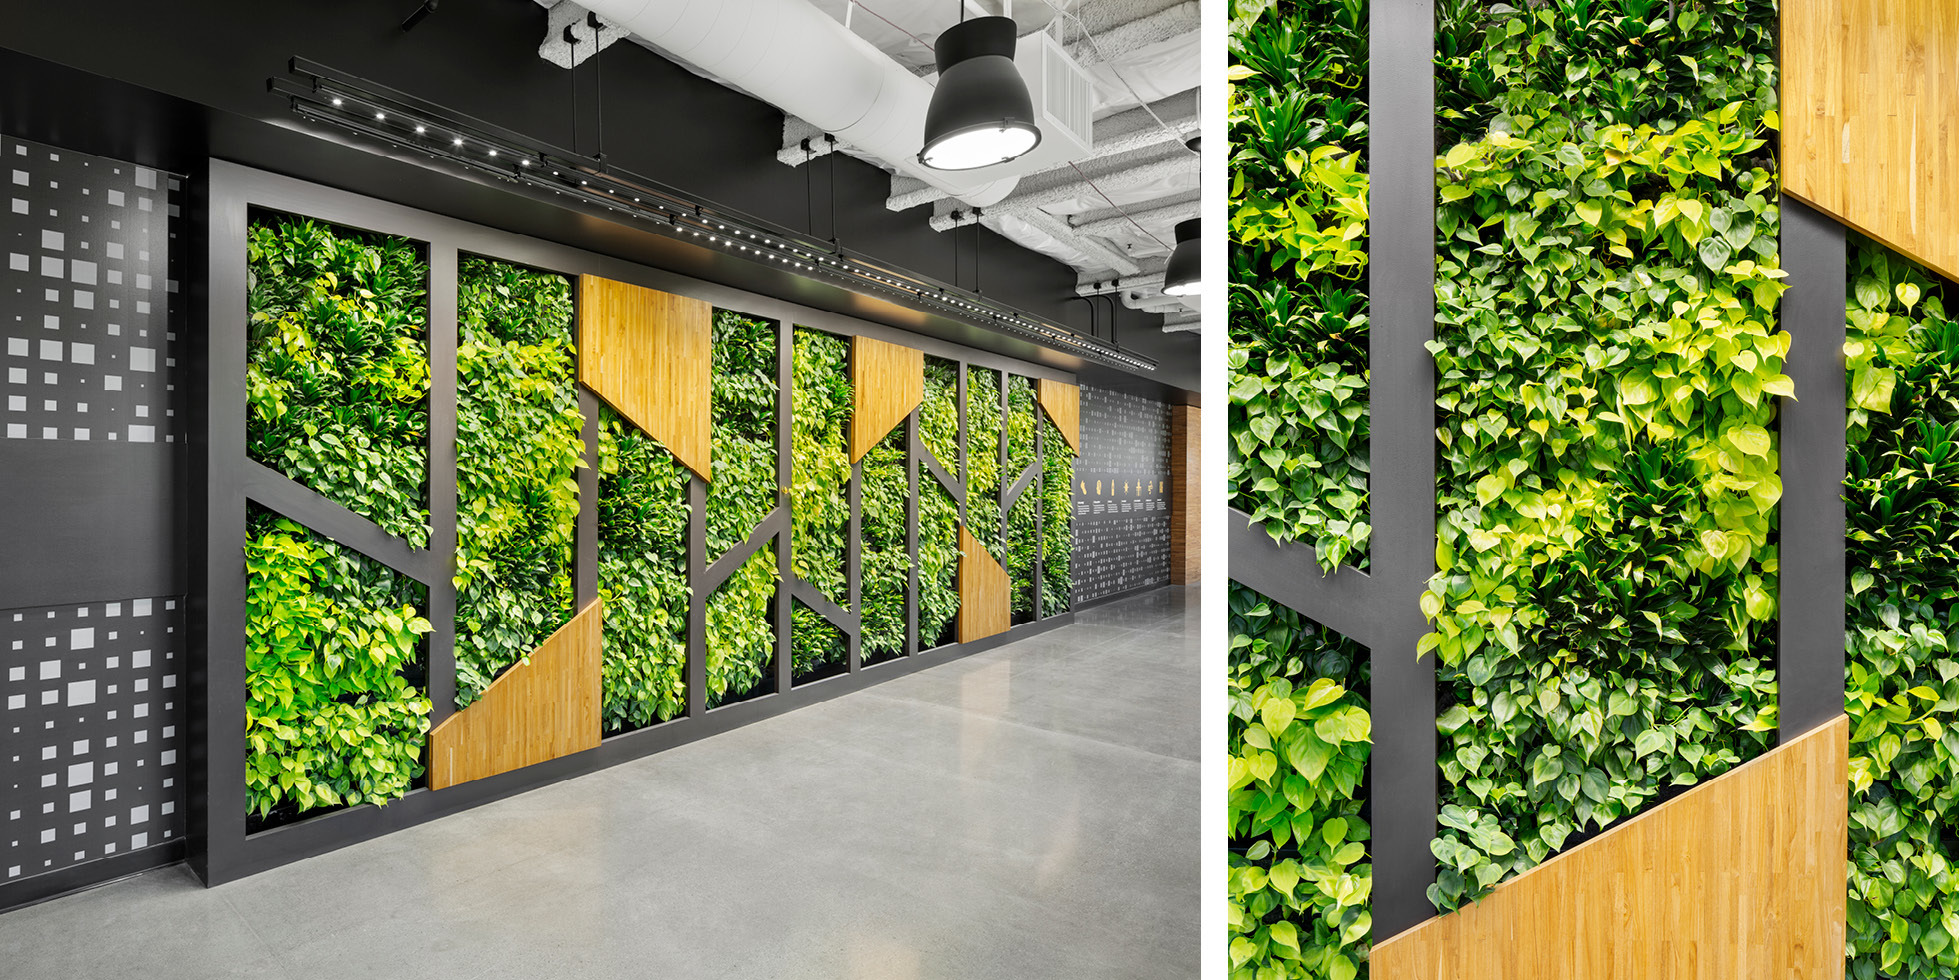 Symantec Living Wall by Habitat Horticulture - View 2